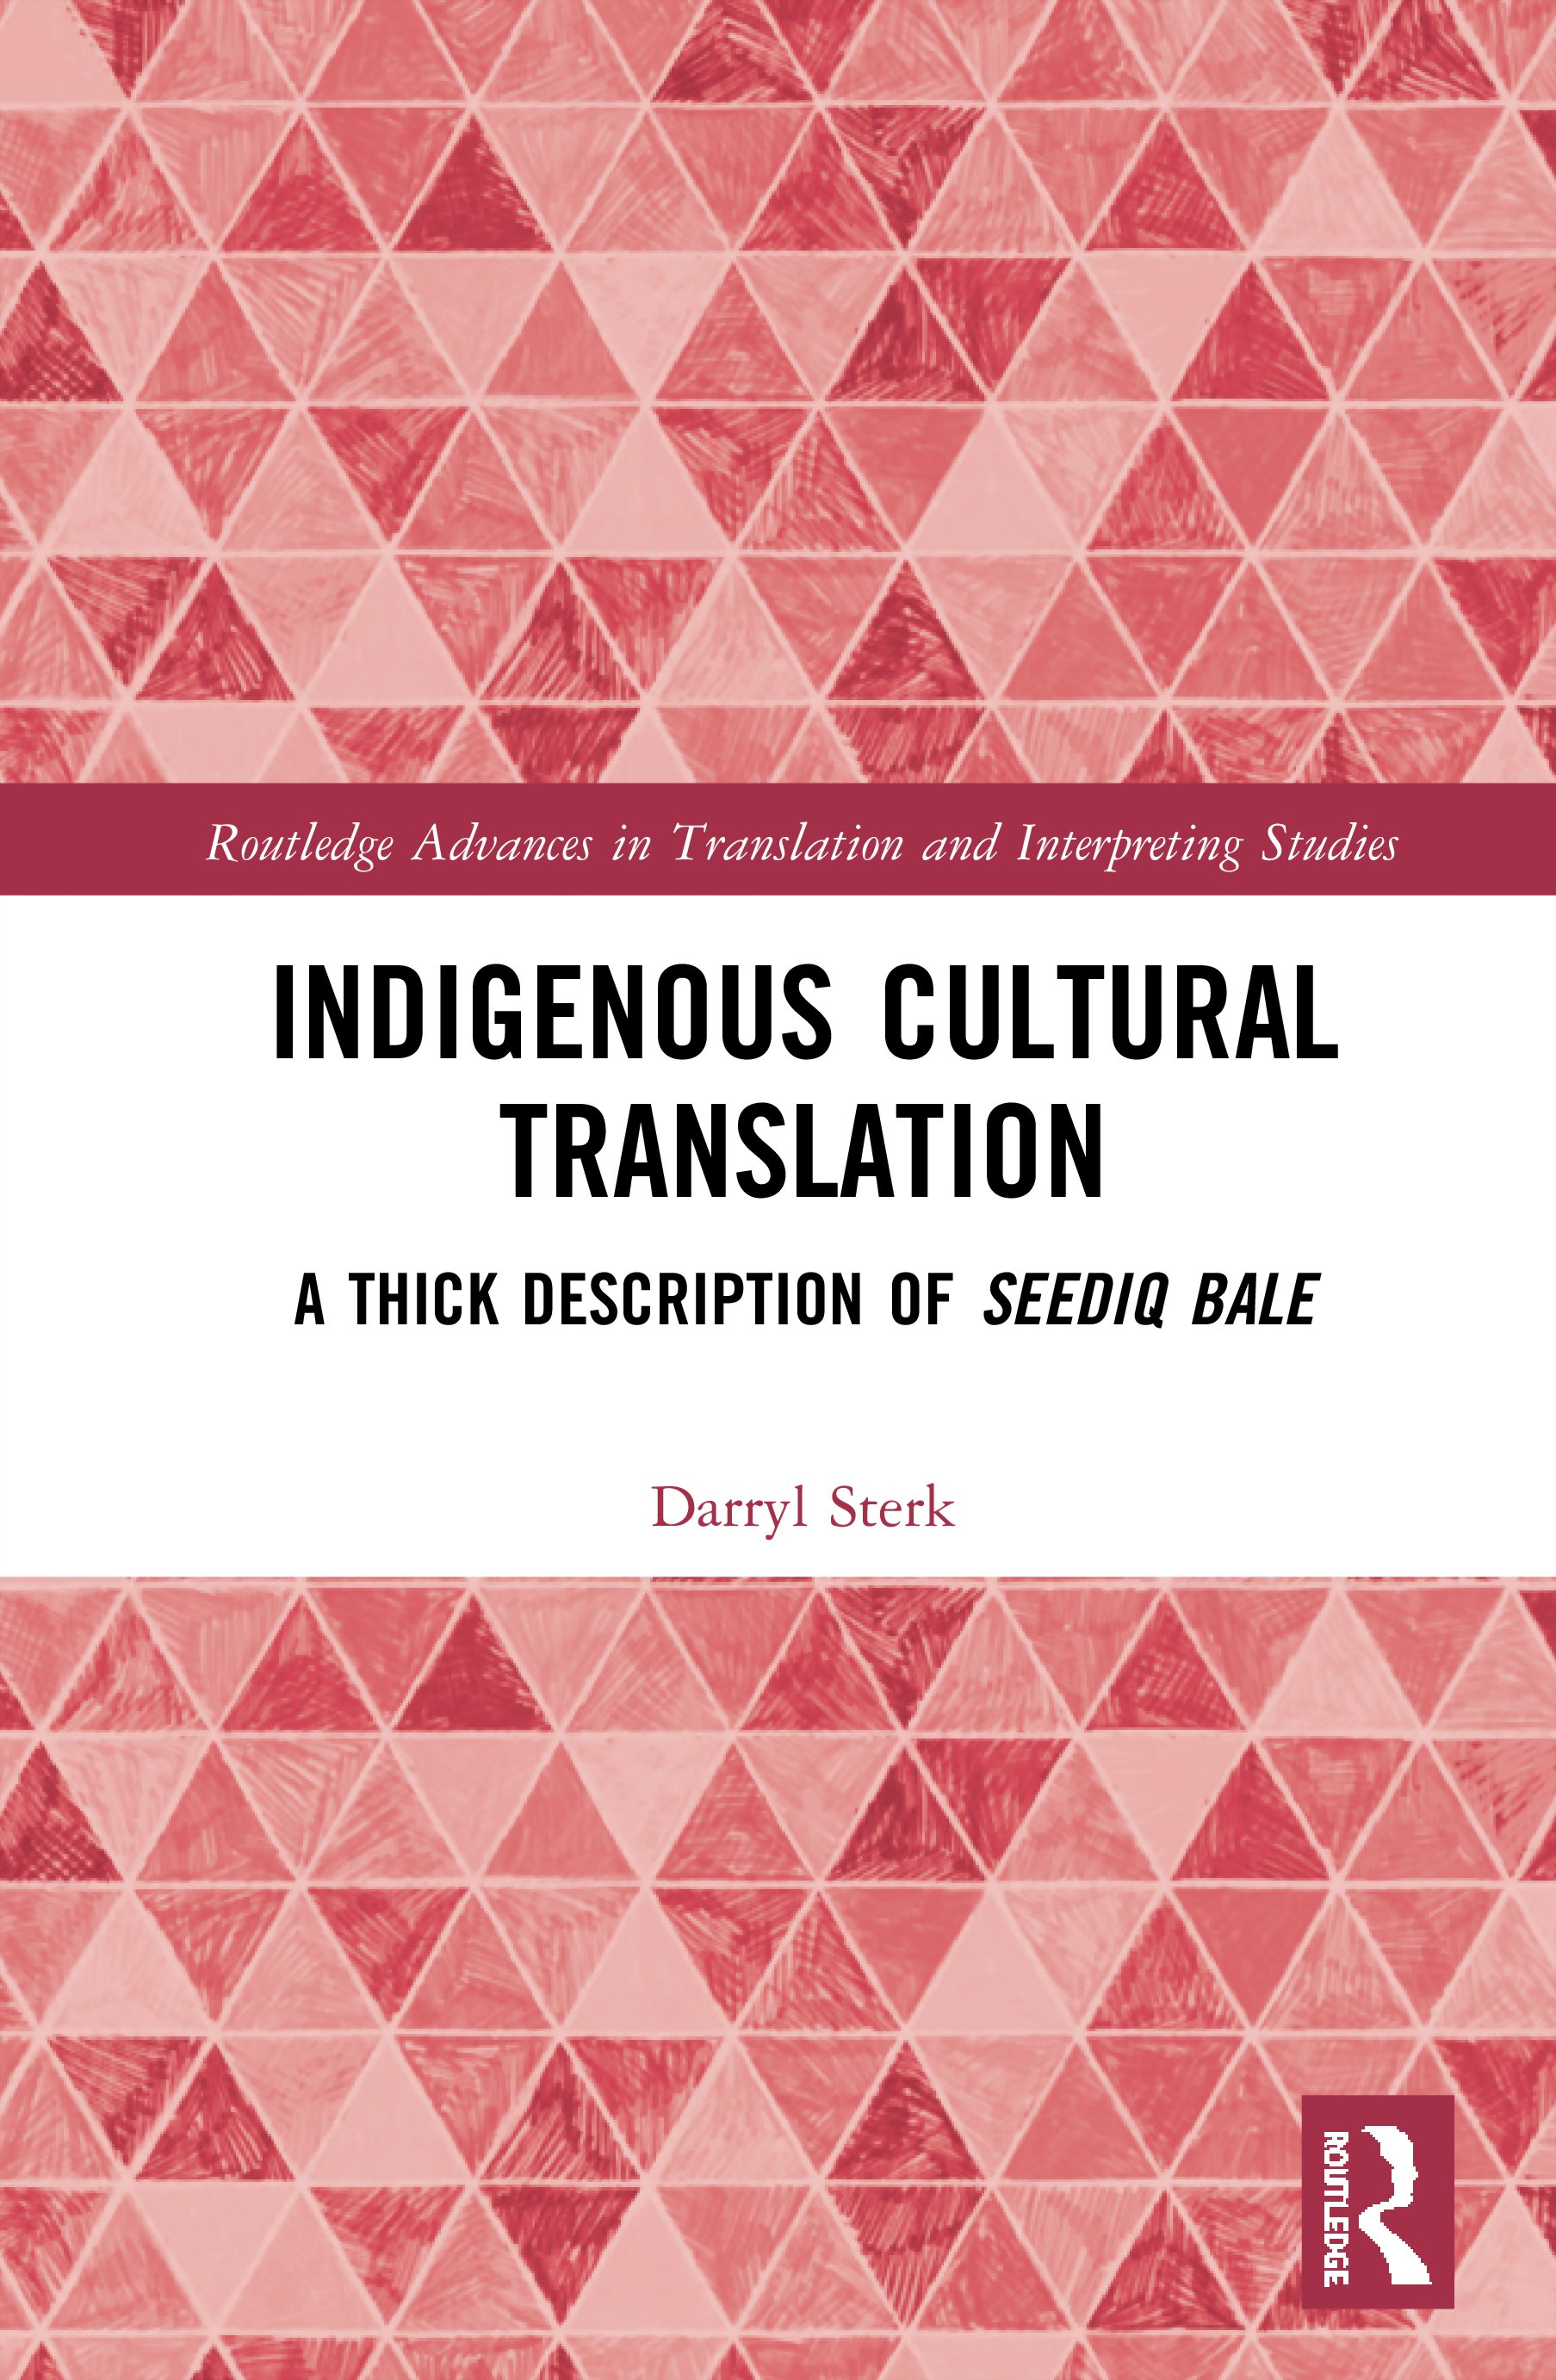 Indigenous Cultural Translation: A Thick Description of Seediq Bale book cover